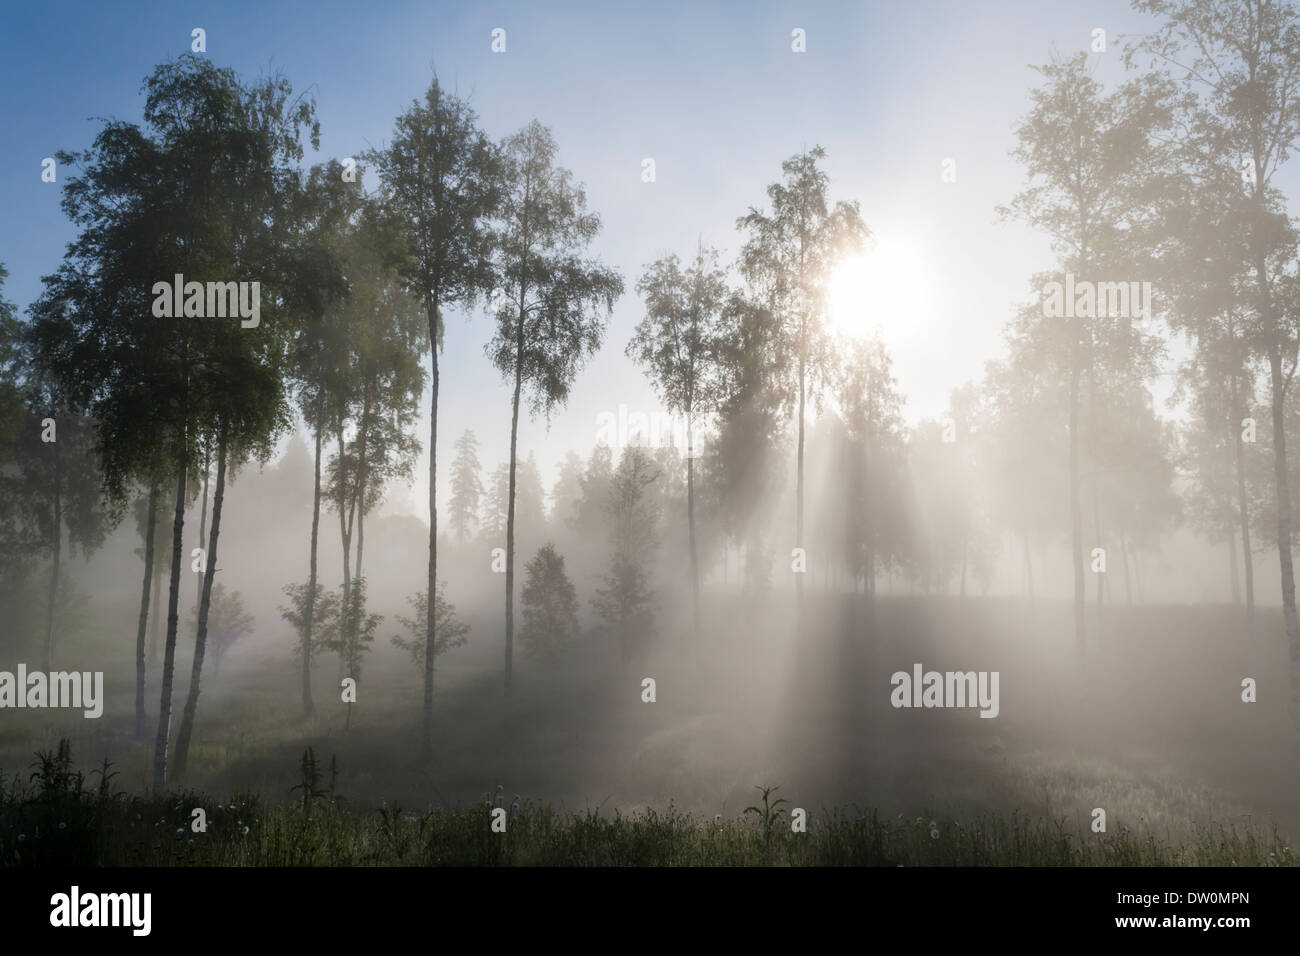 Early Morning Sun Shining through Mist and Trees - Stock Image